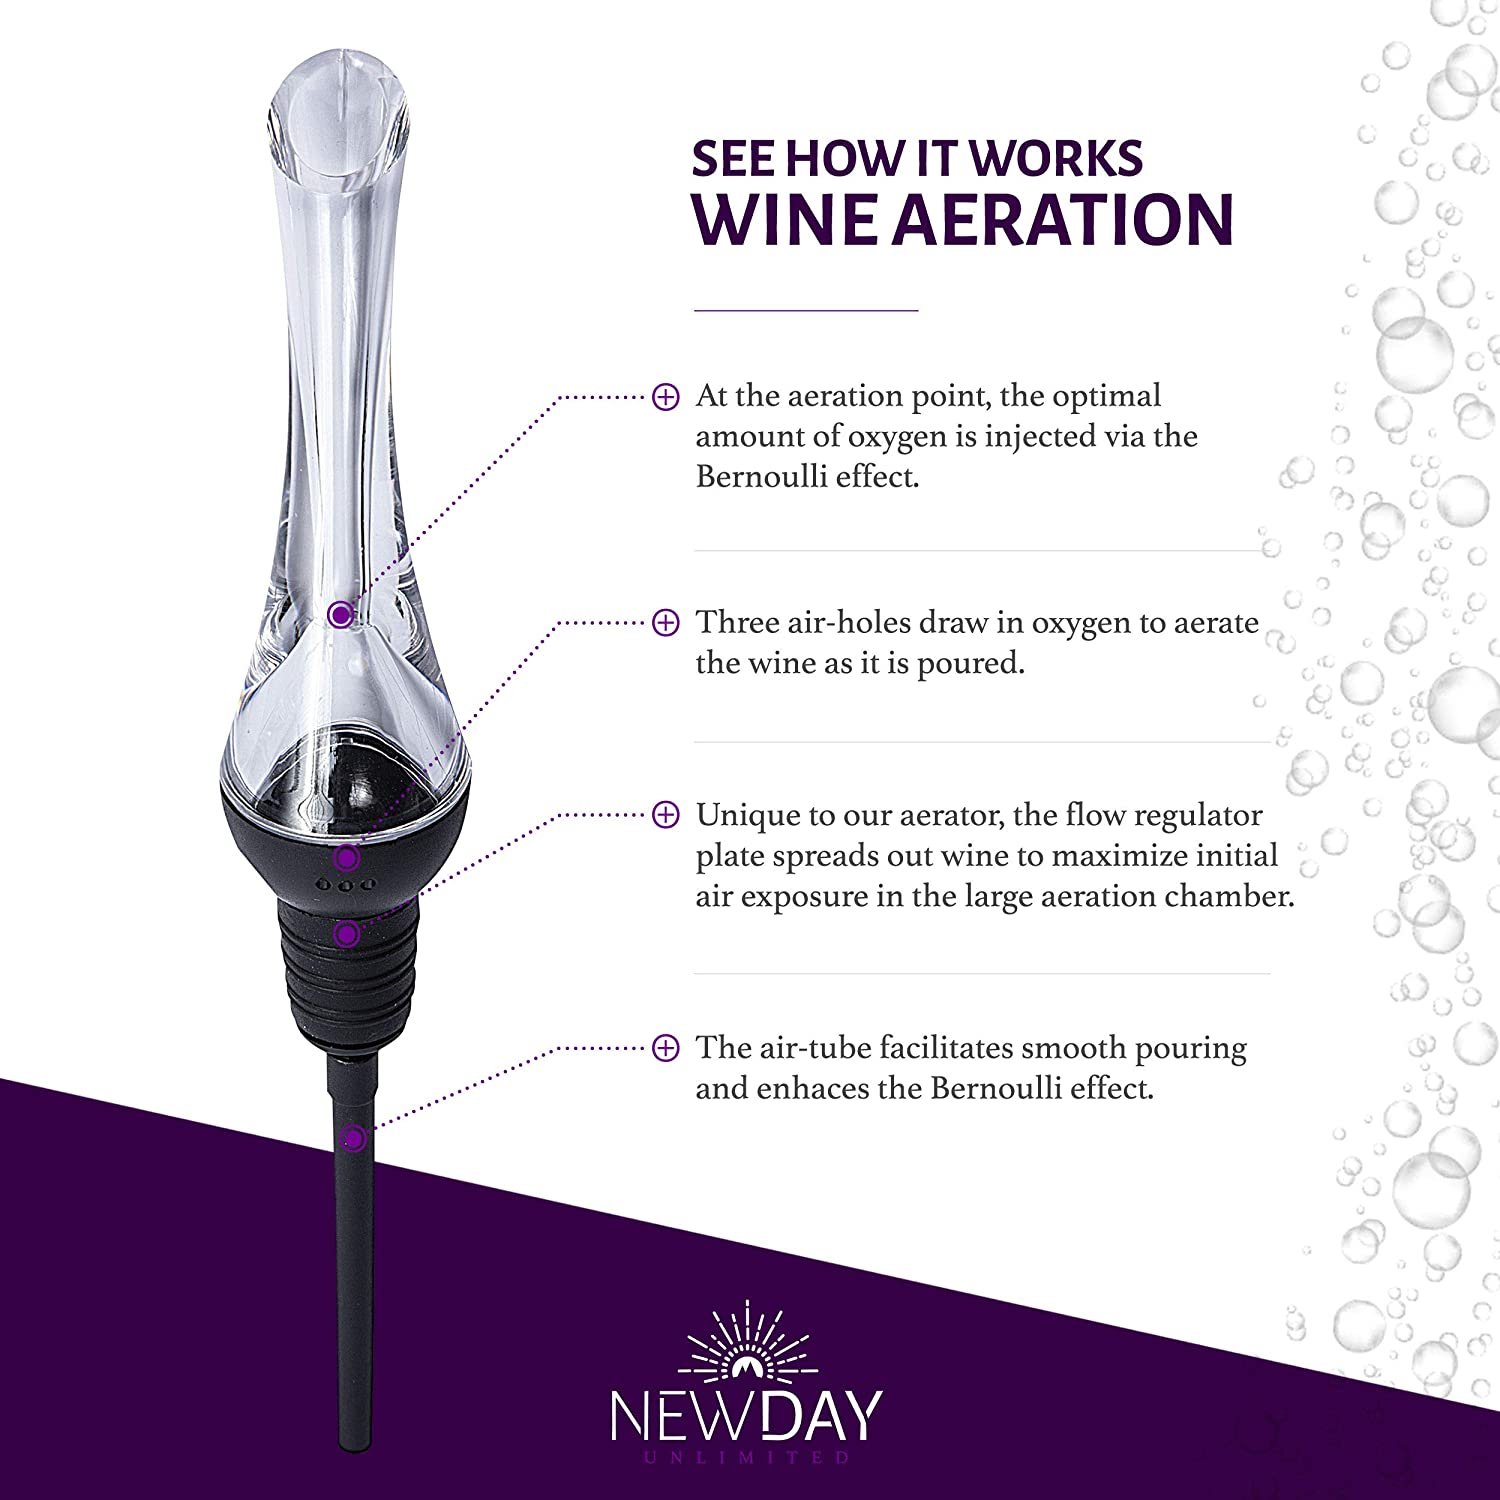 Wine Aerator Pourer from New Day Unlimited Premium Wine Aerator for wine bottle and Decanter Spout Drip-free Wine Pourer and Dispenser Wine Aerators make great gifts! Immediate Wine Aeration